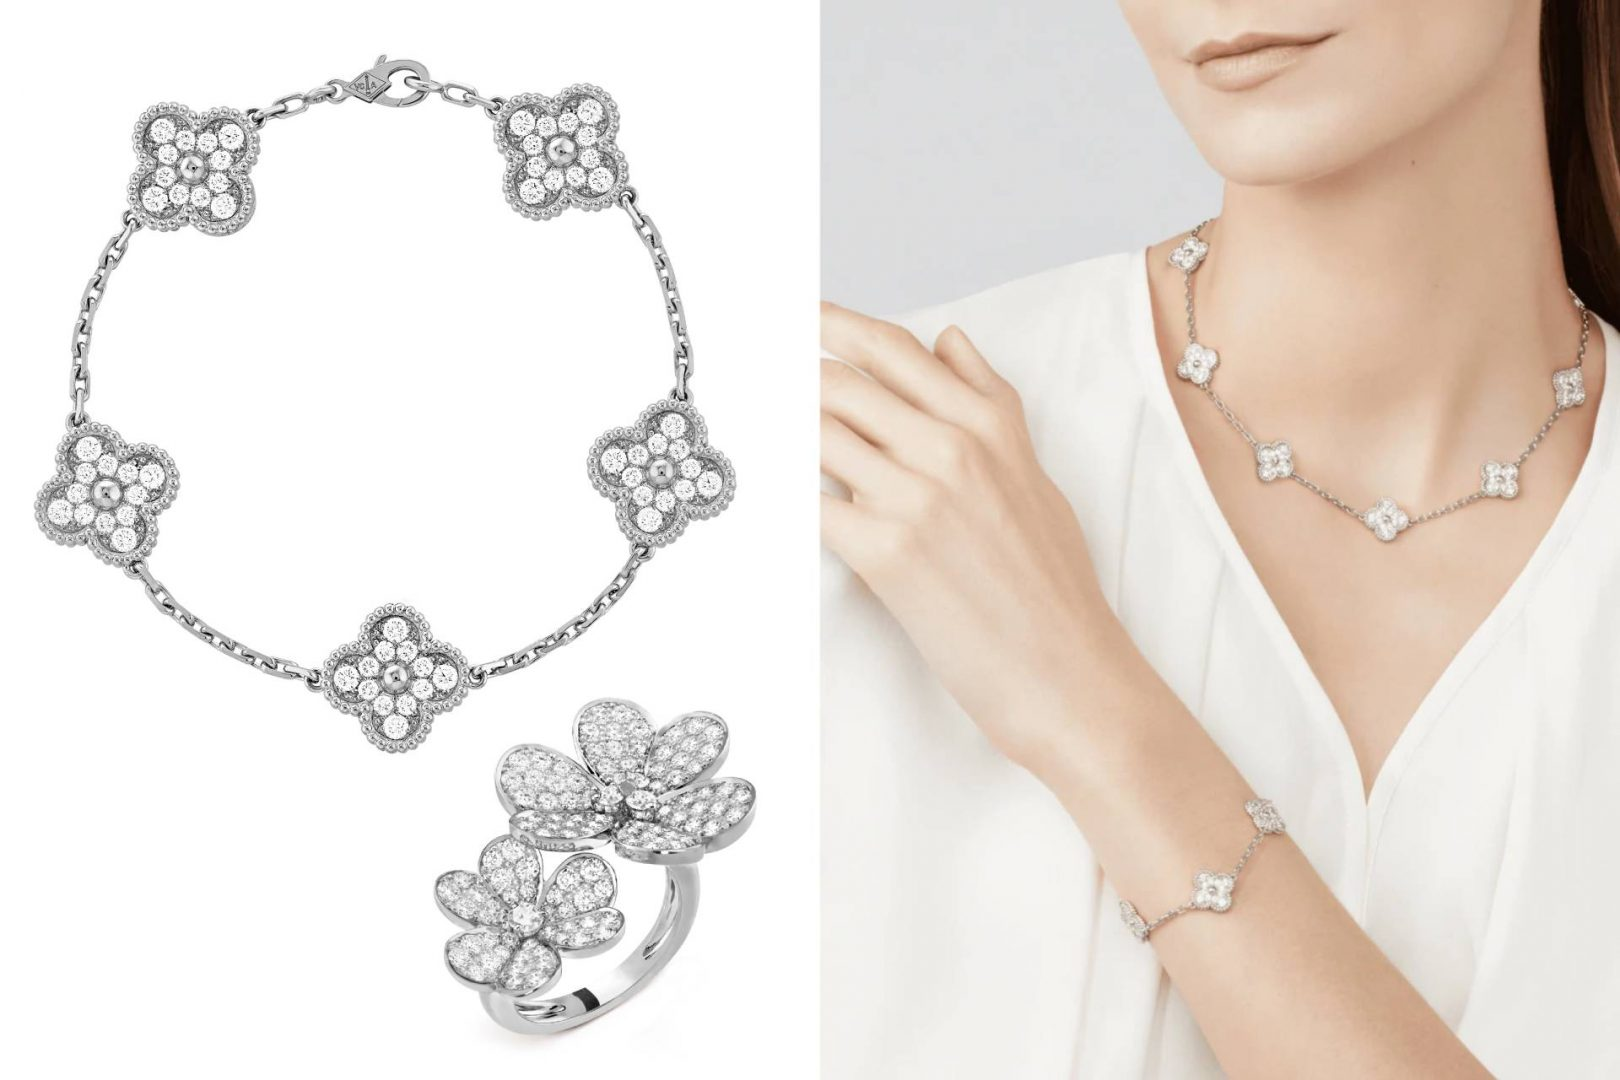 Van Cleef & Arpels Diamond Breeze. The Vintage Alhambra bracelet, and the Frivole Between the Finger ring. Gift for wife, girlfriend.